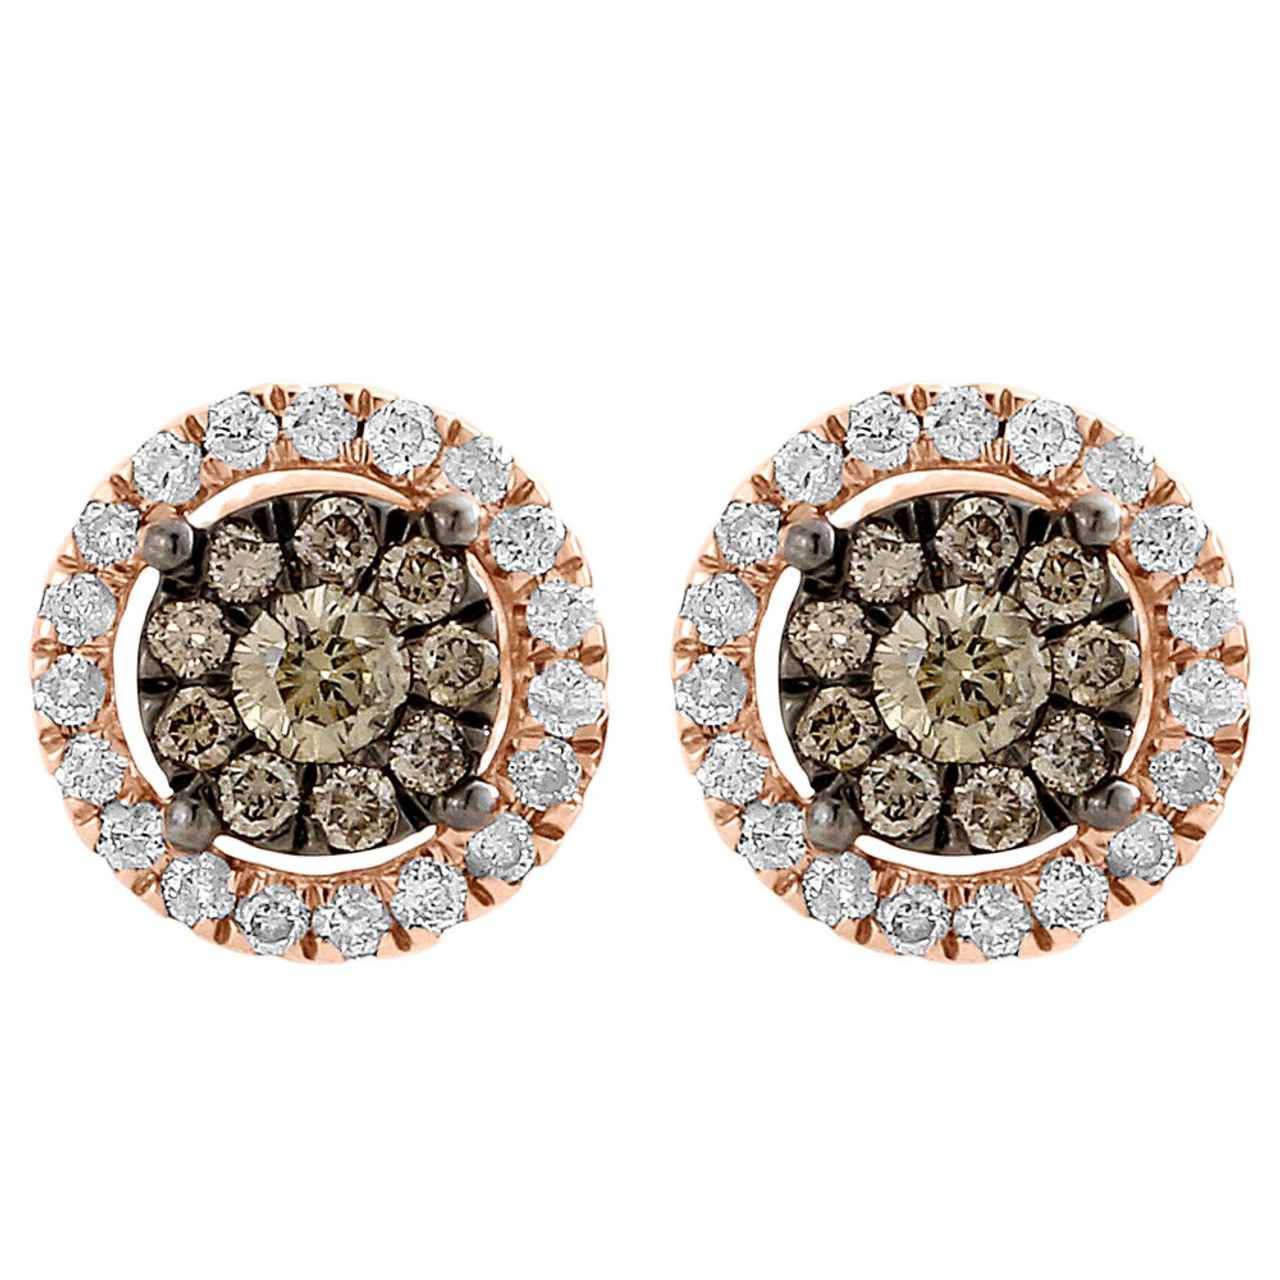 Brown Diamond Solitaire Earrings 14k Rose Gold Round Ladies Studs 0 72 Tcw Jfl Diamonds Timepieces